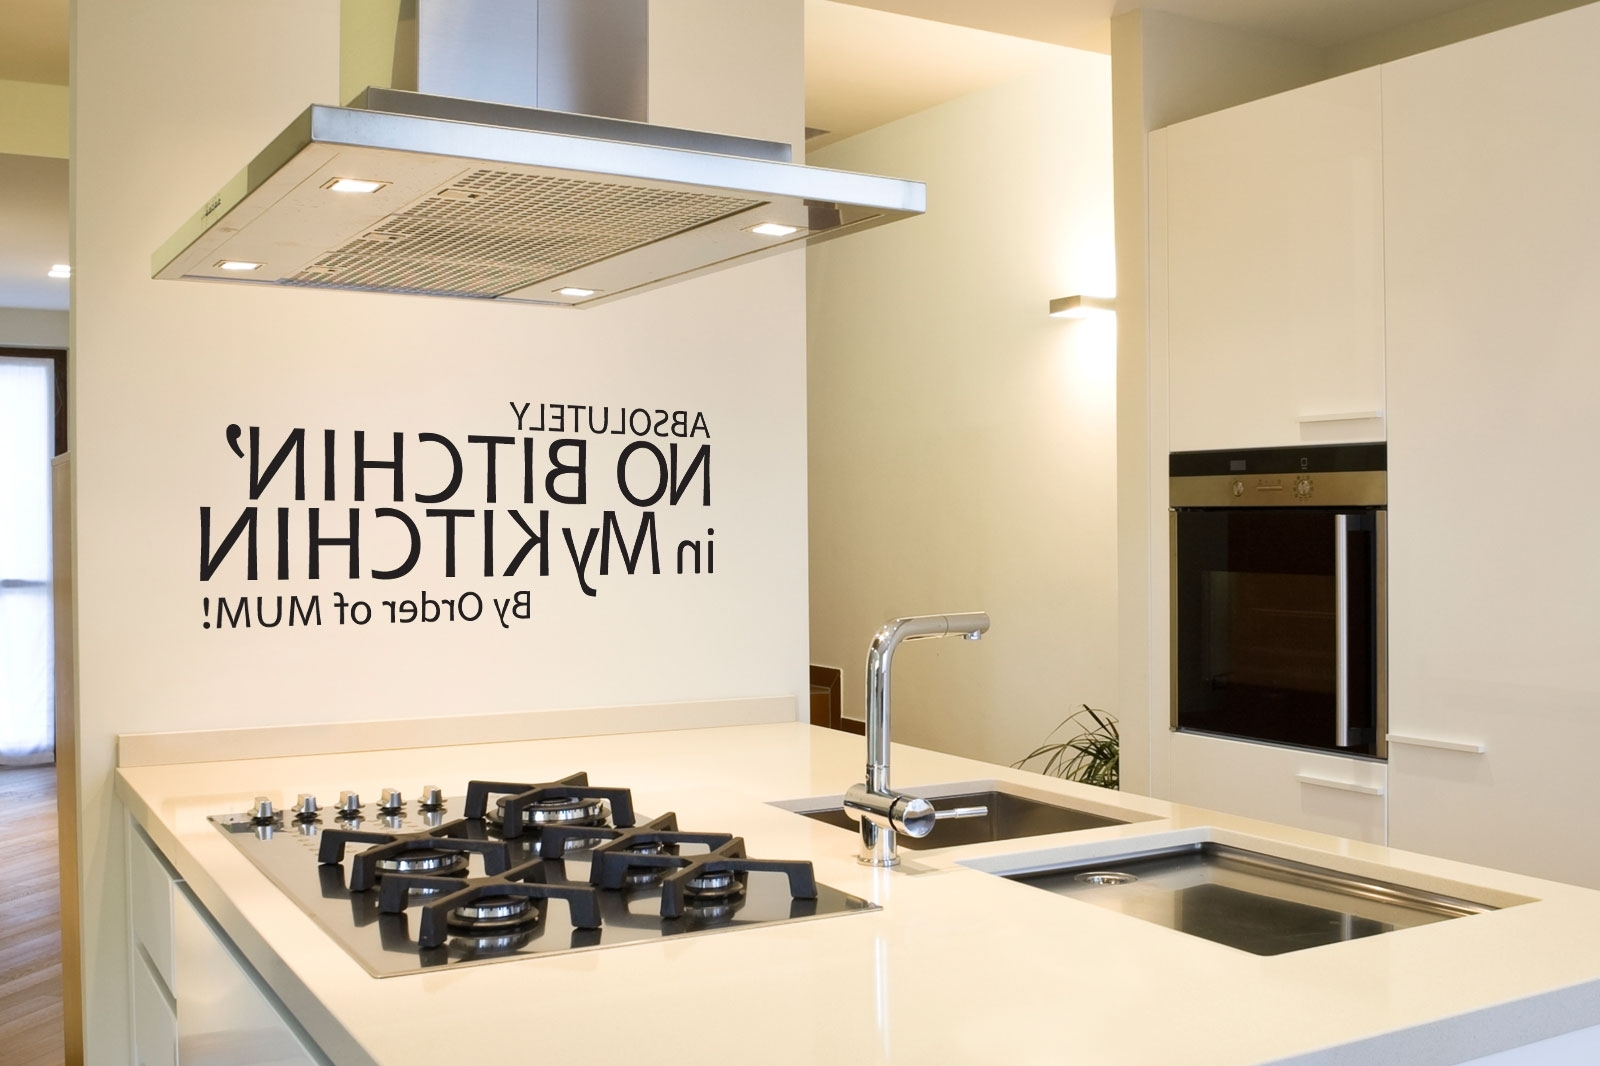 Recent Garage Wall Accents For Kitchen : Charming Modern Kitchen Wall Decor Diy Ideas With How To (View 15 of 15)